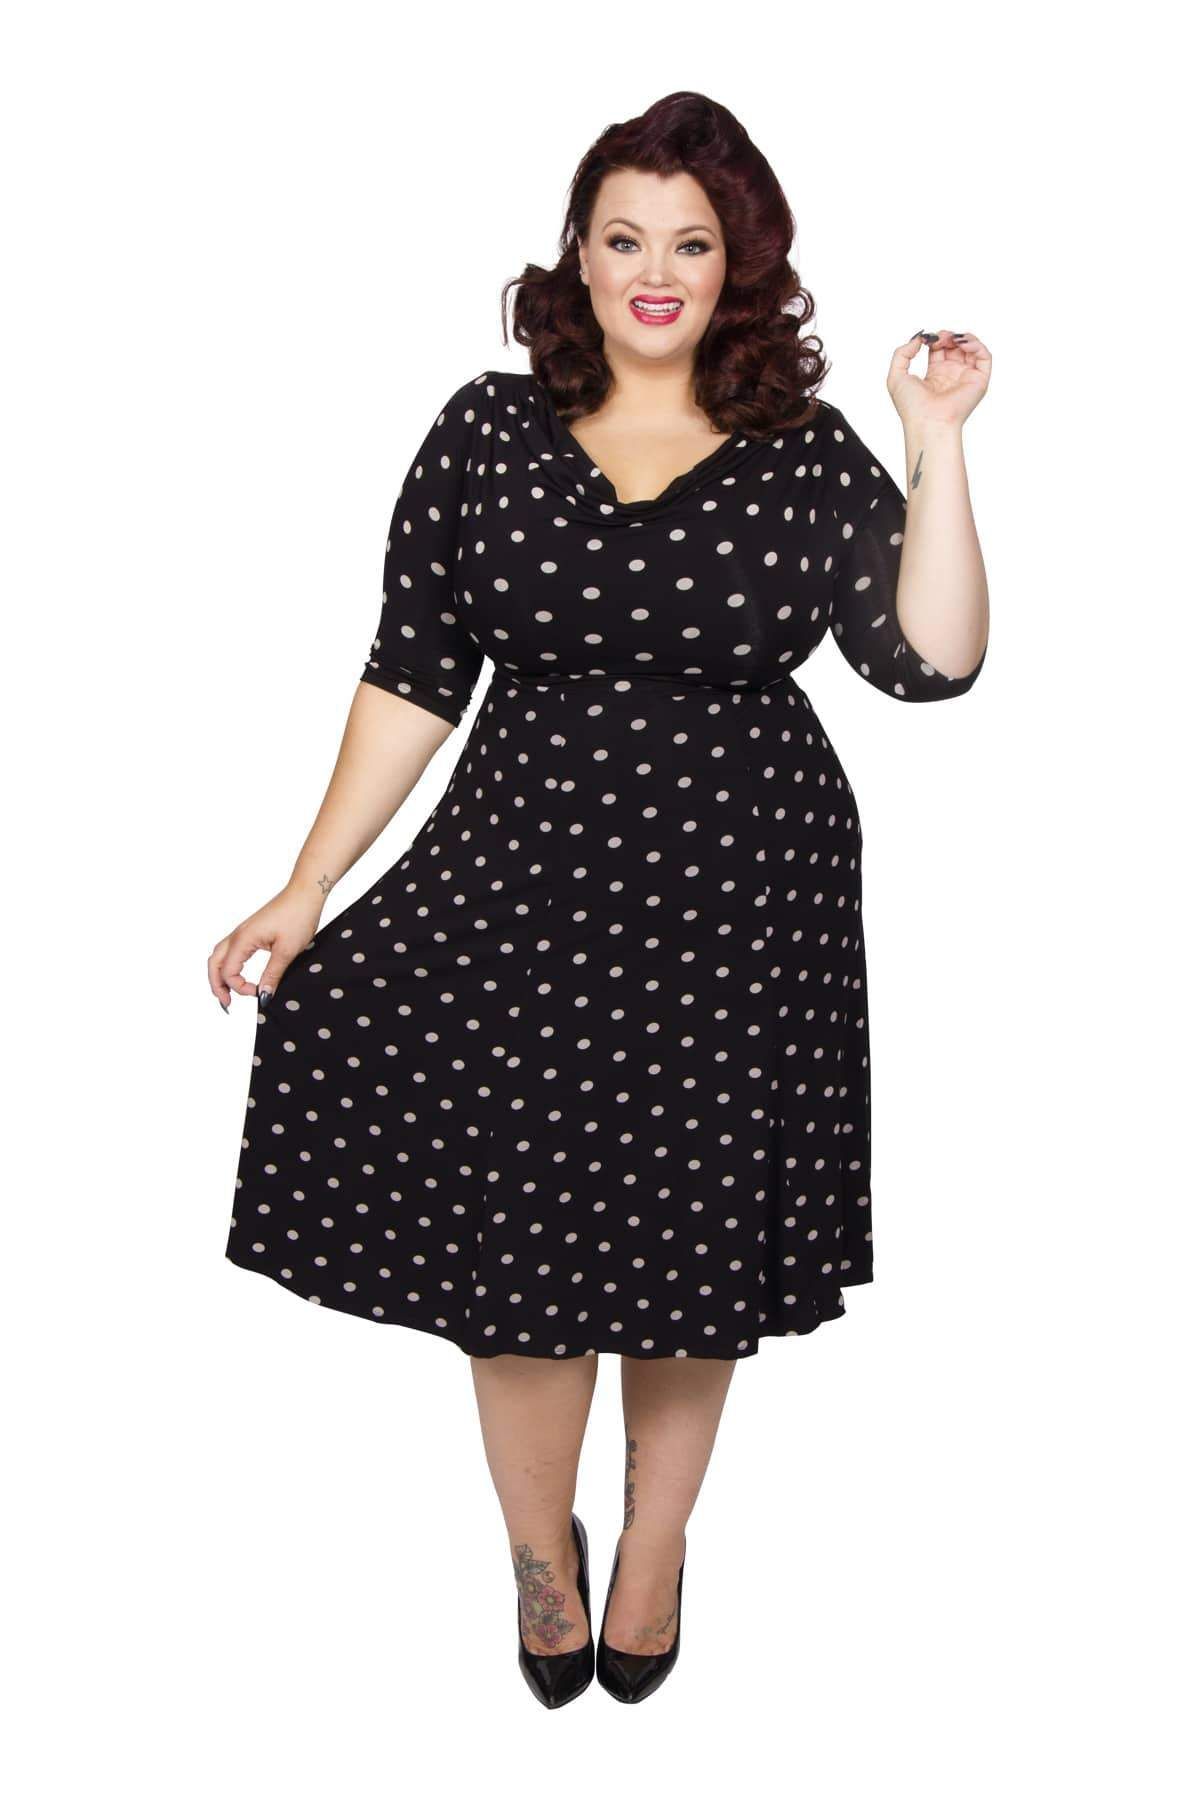 1940s Dresses and Clothing UK | 40s Shoes UK Lollidot Cowl Neck 40s Dress - BlackWhite  12 £60.00 AT vintagedancer.com